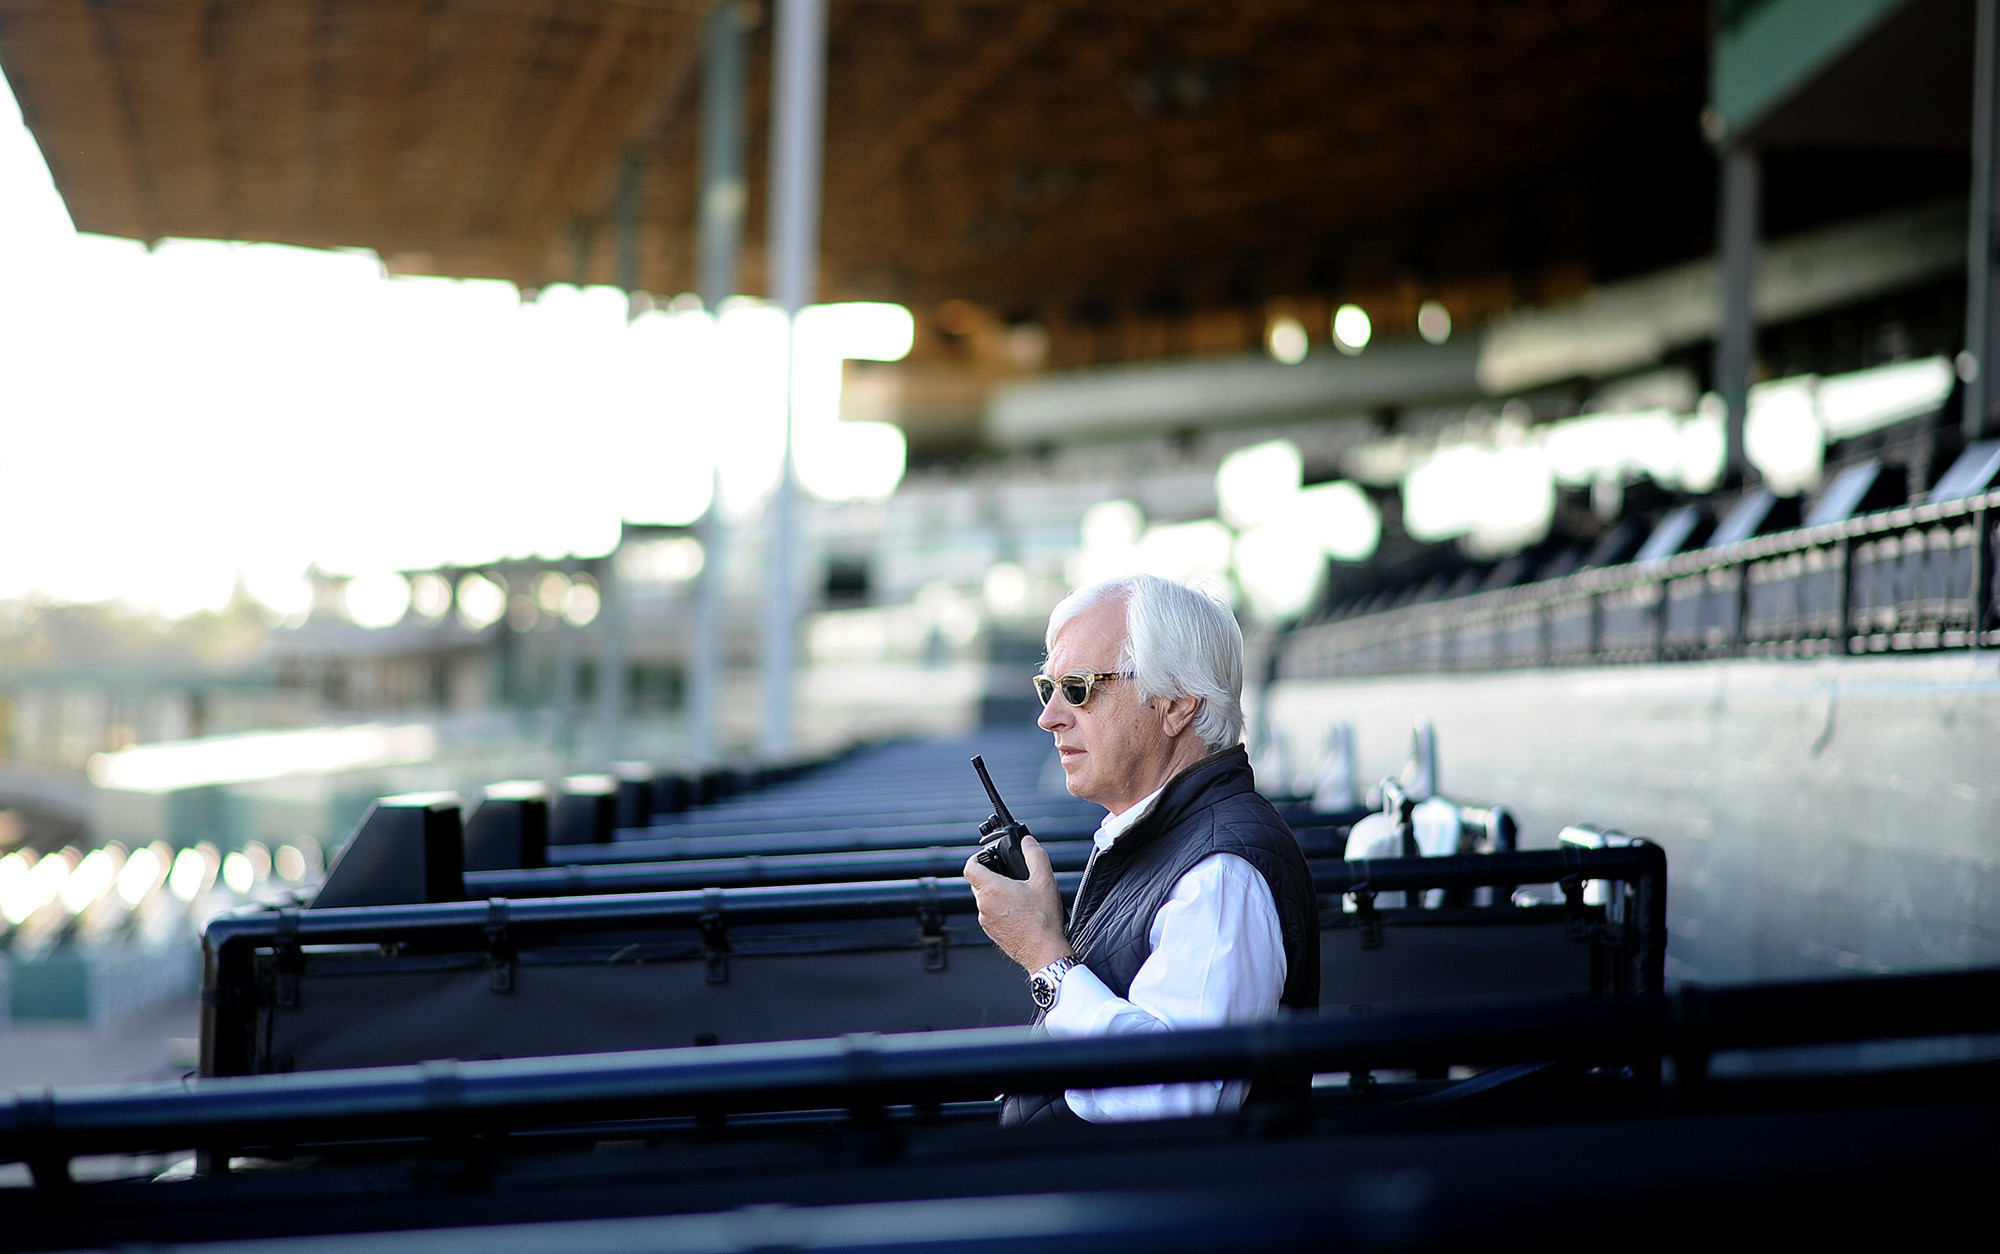 Bob Baffert And Jockey Martin Garcia Have A Falling Out Just Before The Kentucky Derby